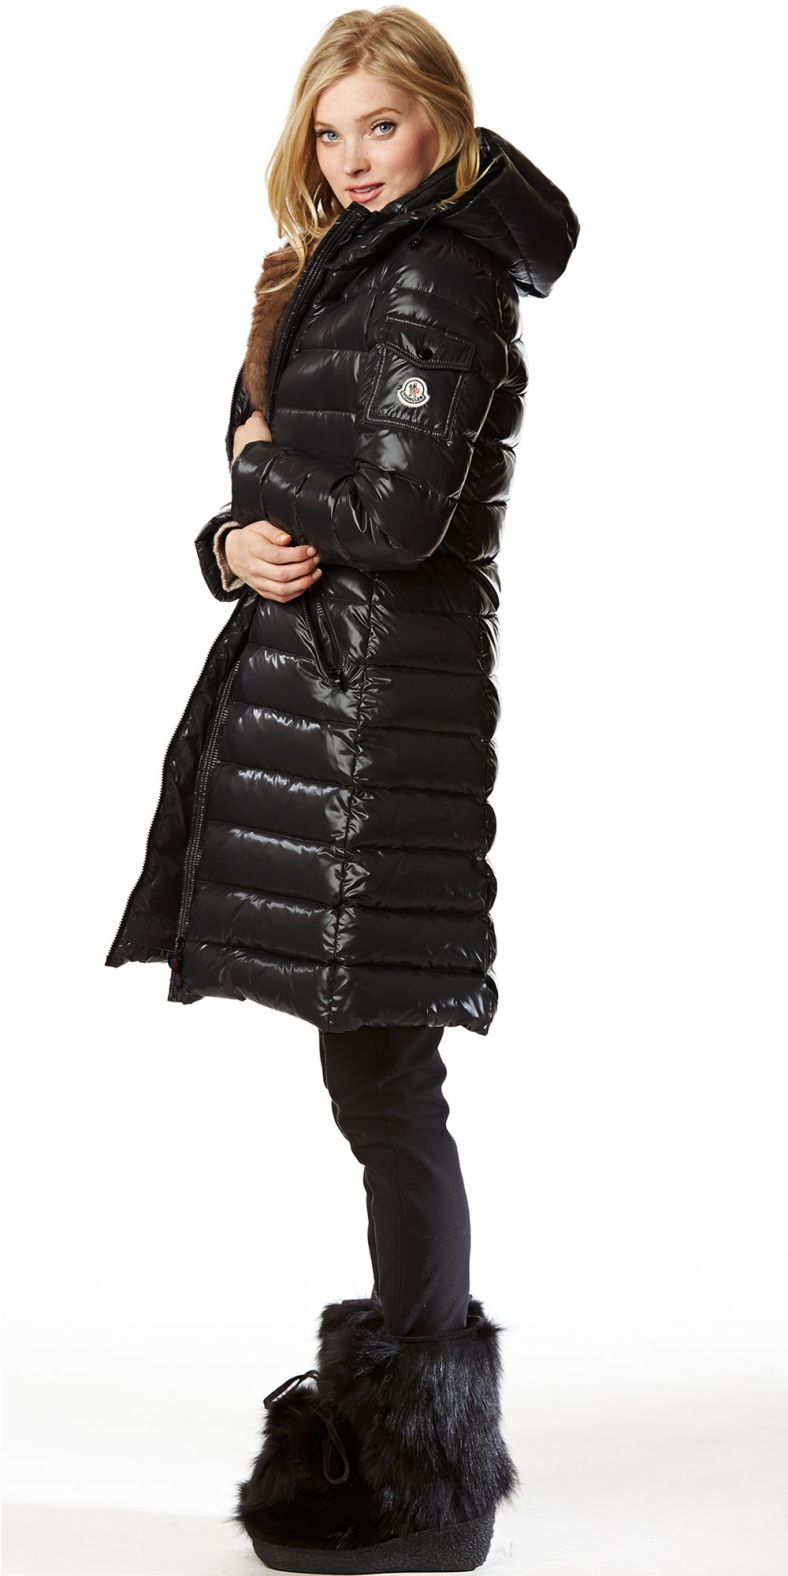 673ba1bc0 Black Moncler 'Moka' down coat | Aprês Ski | Moncler jacket women ...